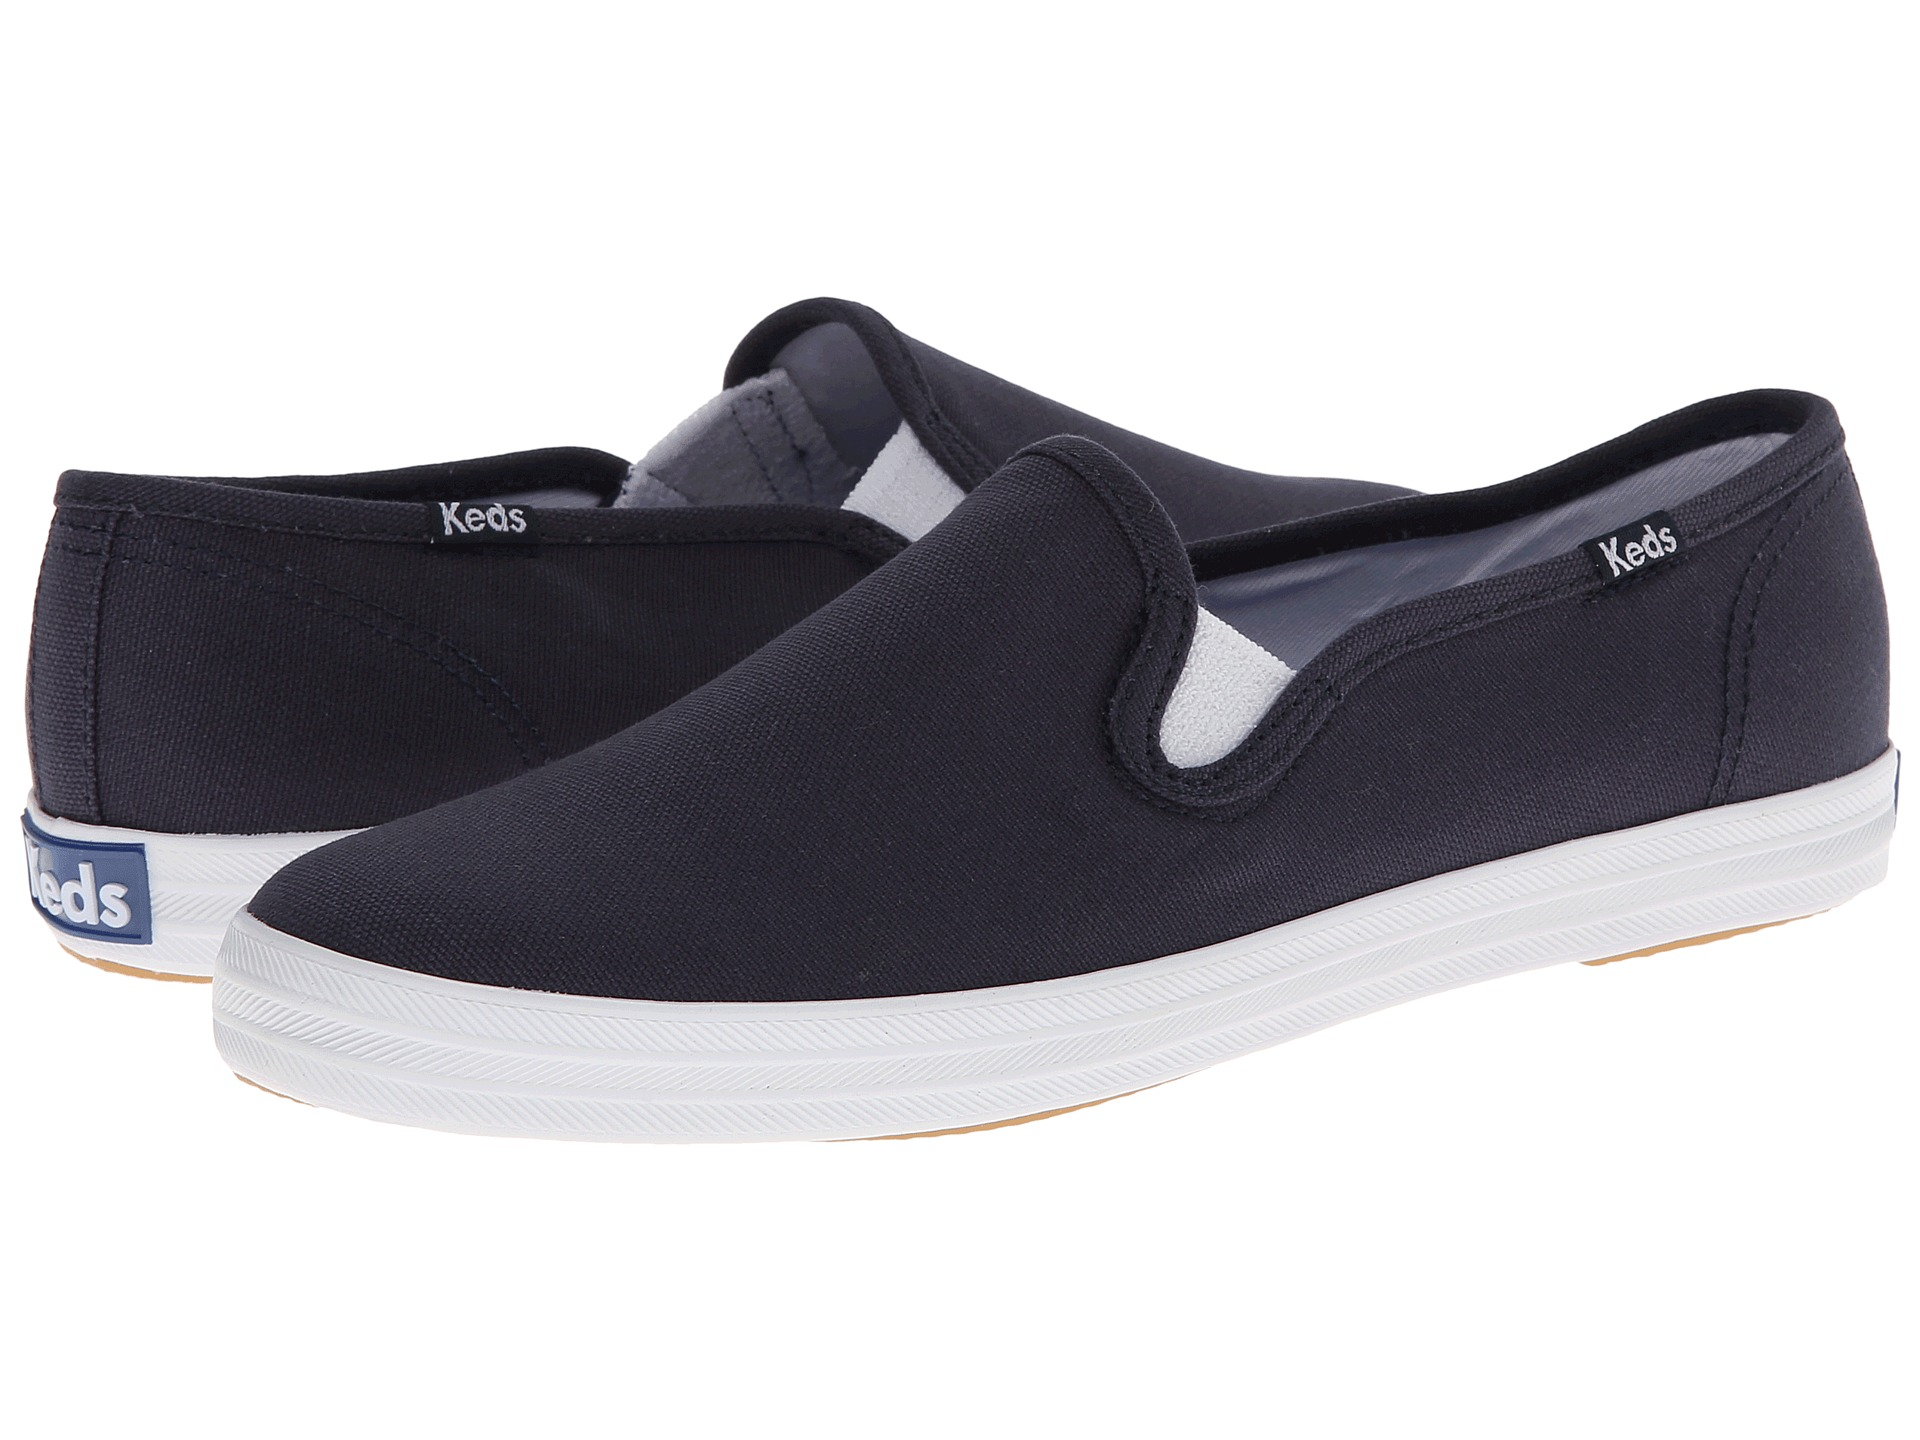 keds chion canvas slip on at zappos